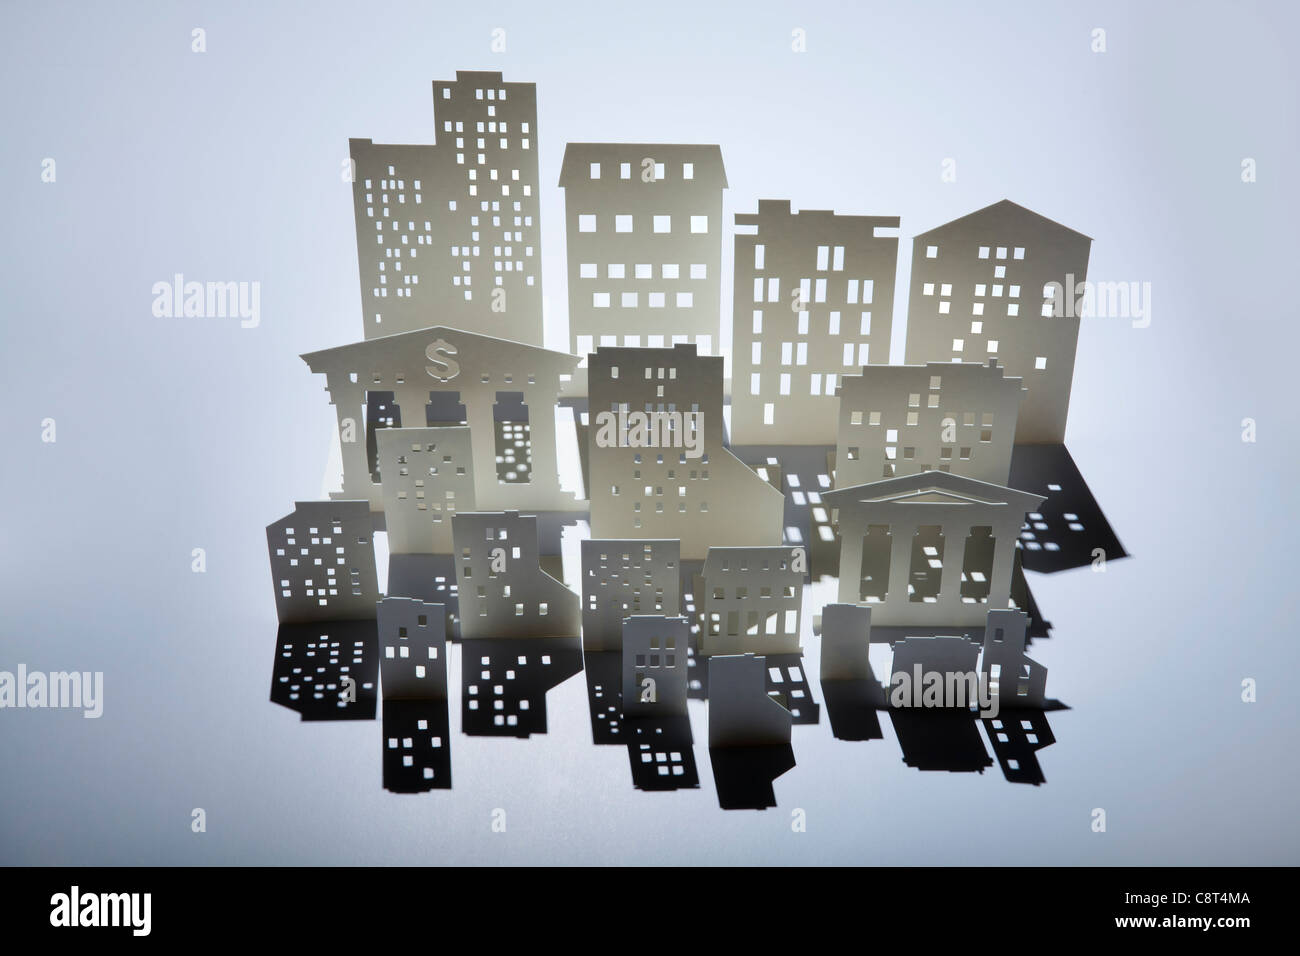 Architectural model of buildings and a bank with dollar sign - Stock Image